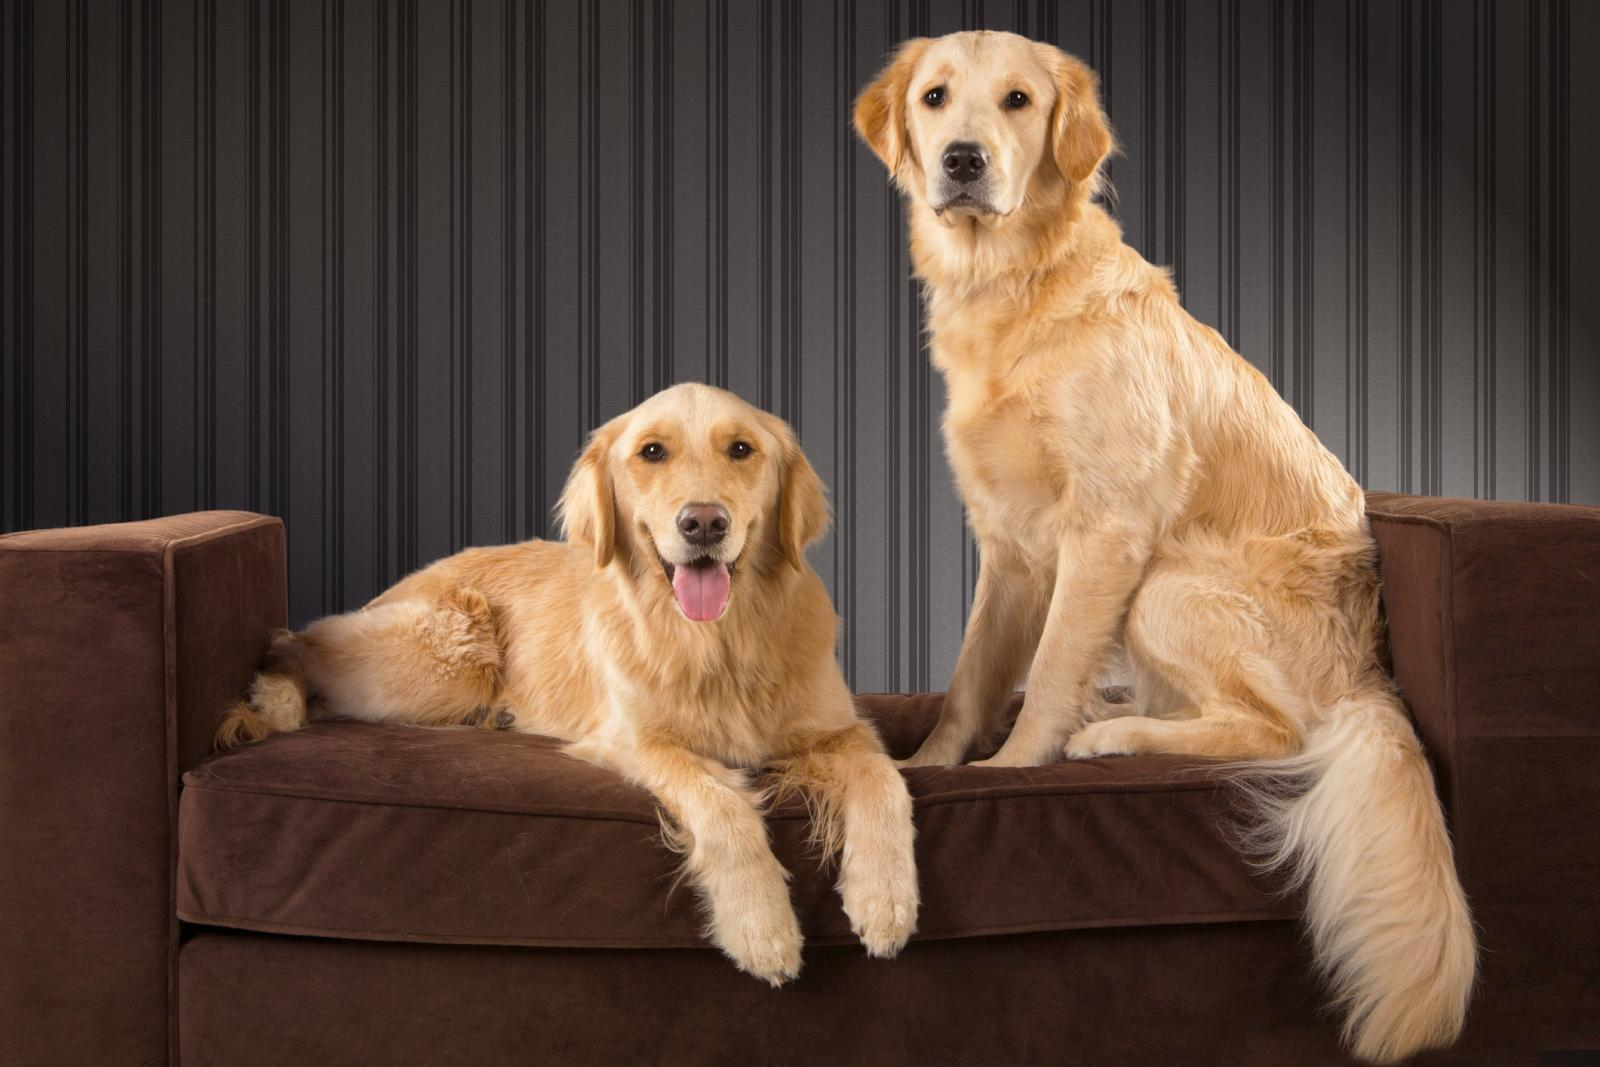 Signs a Dog Has Been Mating | LoveToKnow